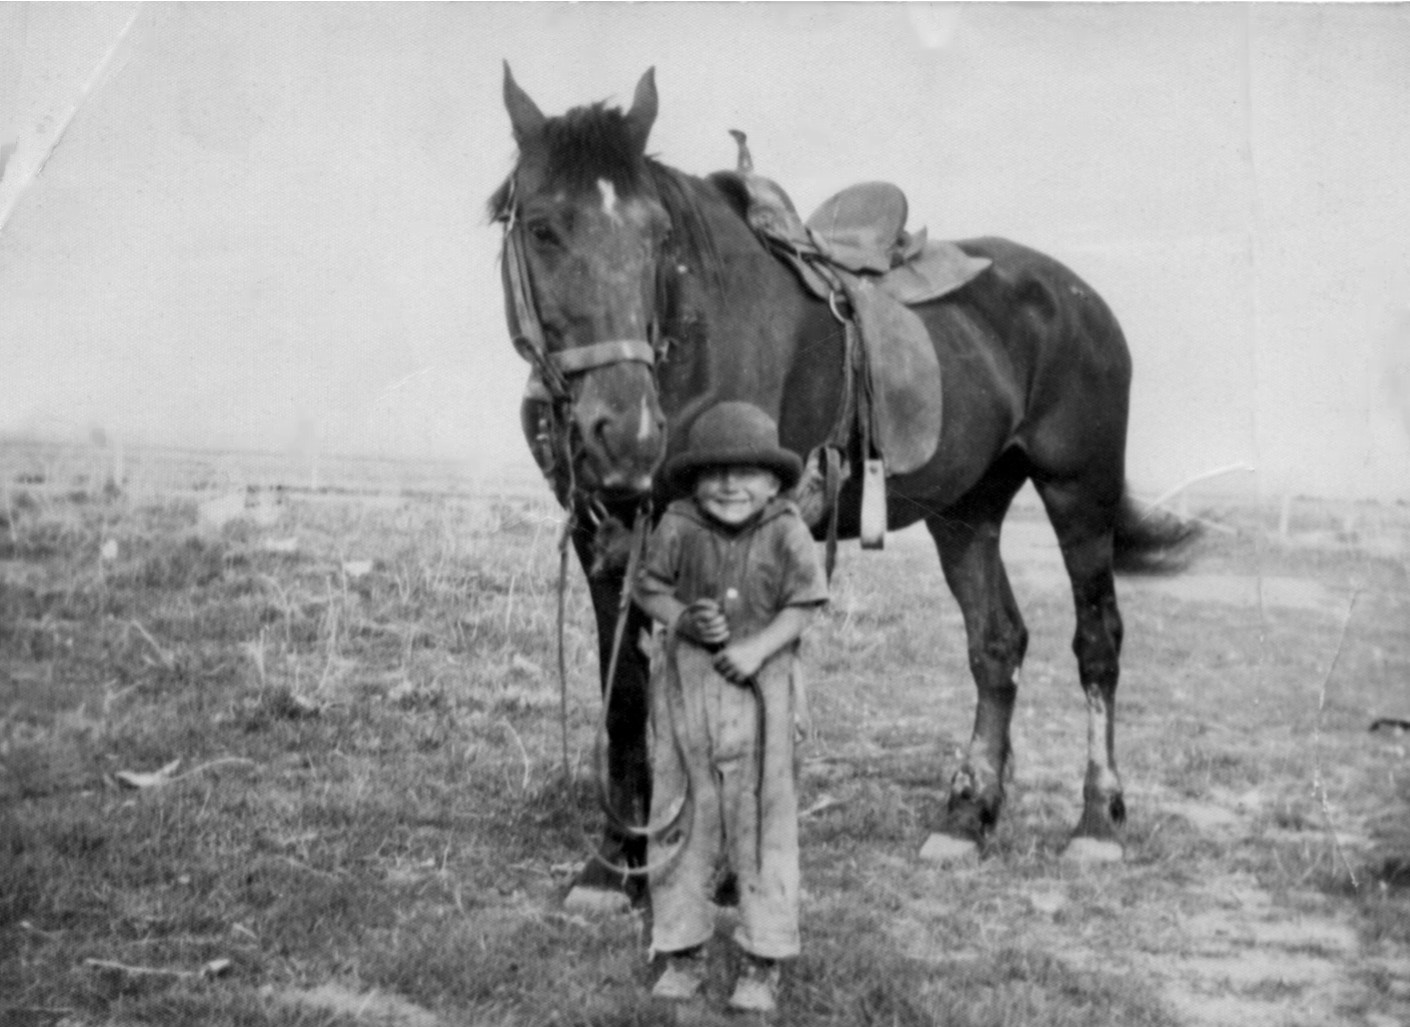 old-photo-of-horse-and-child